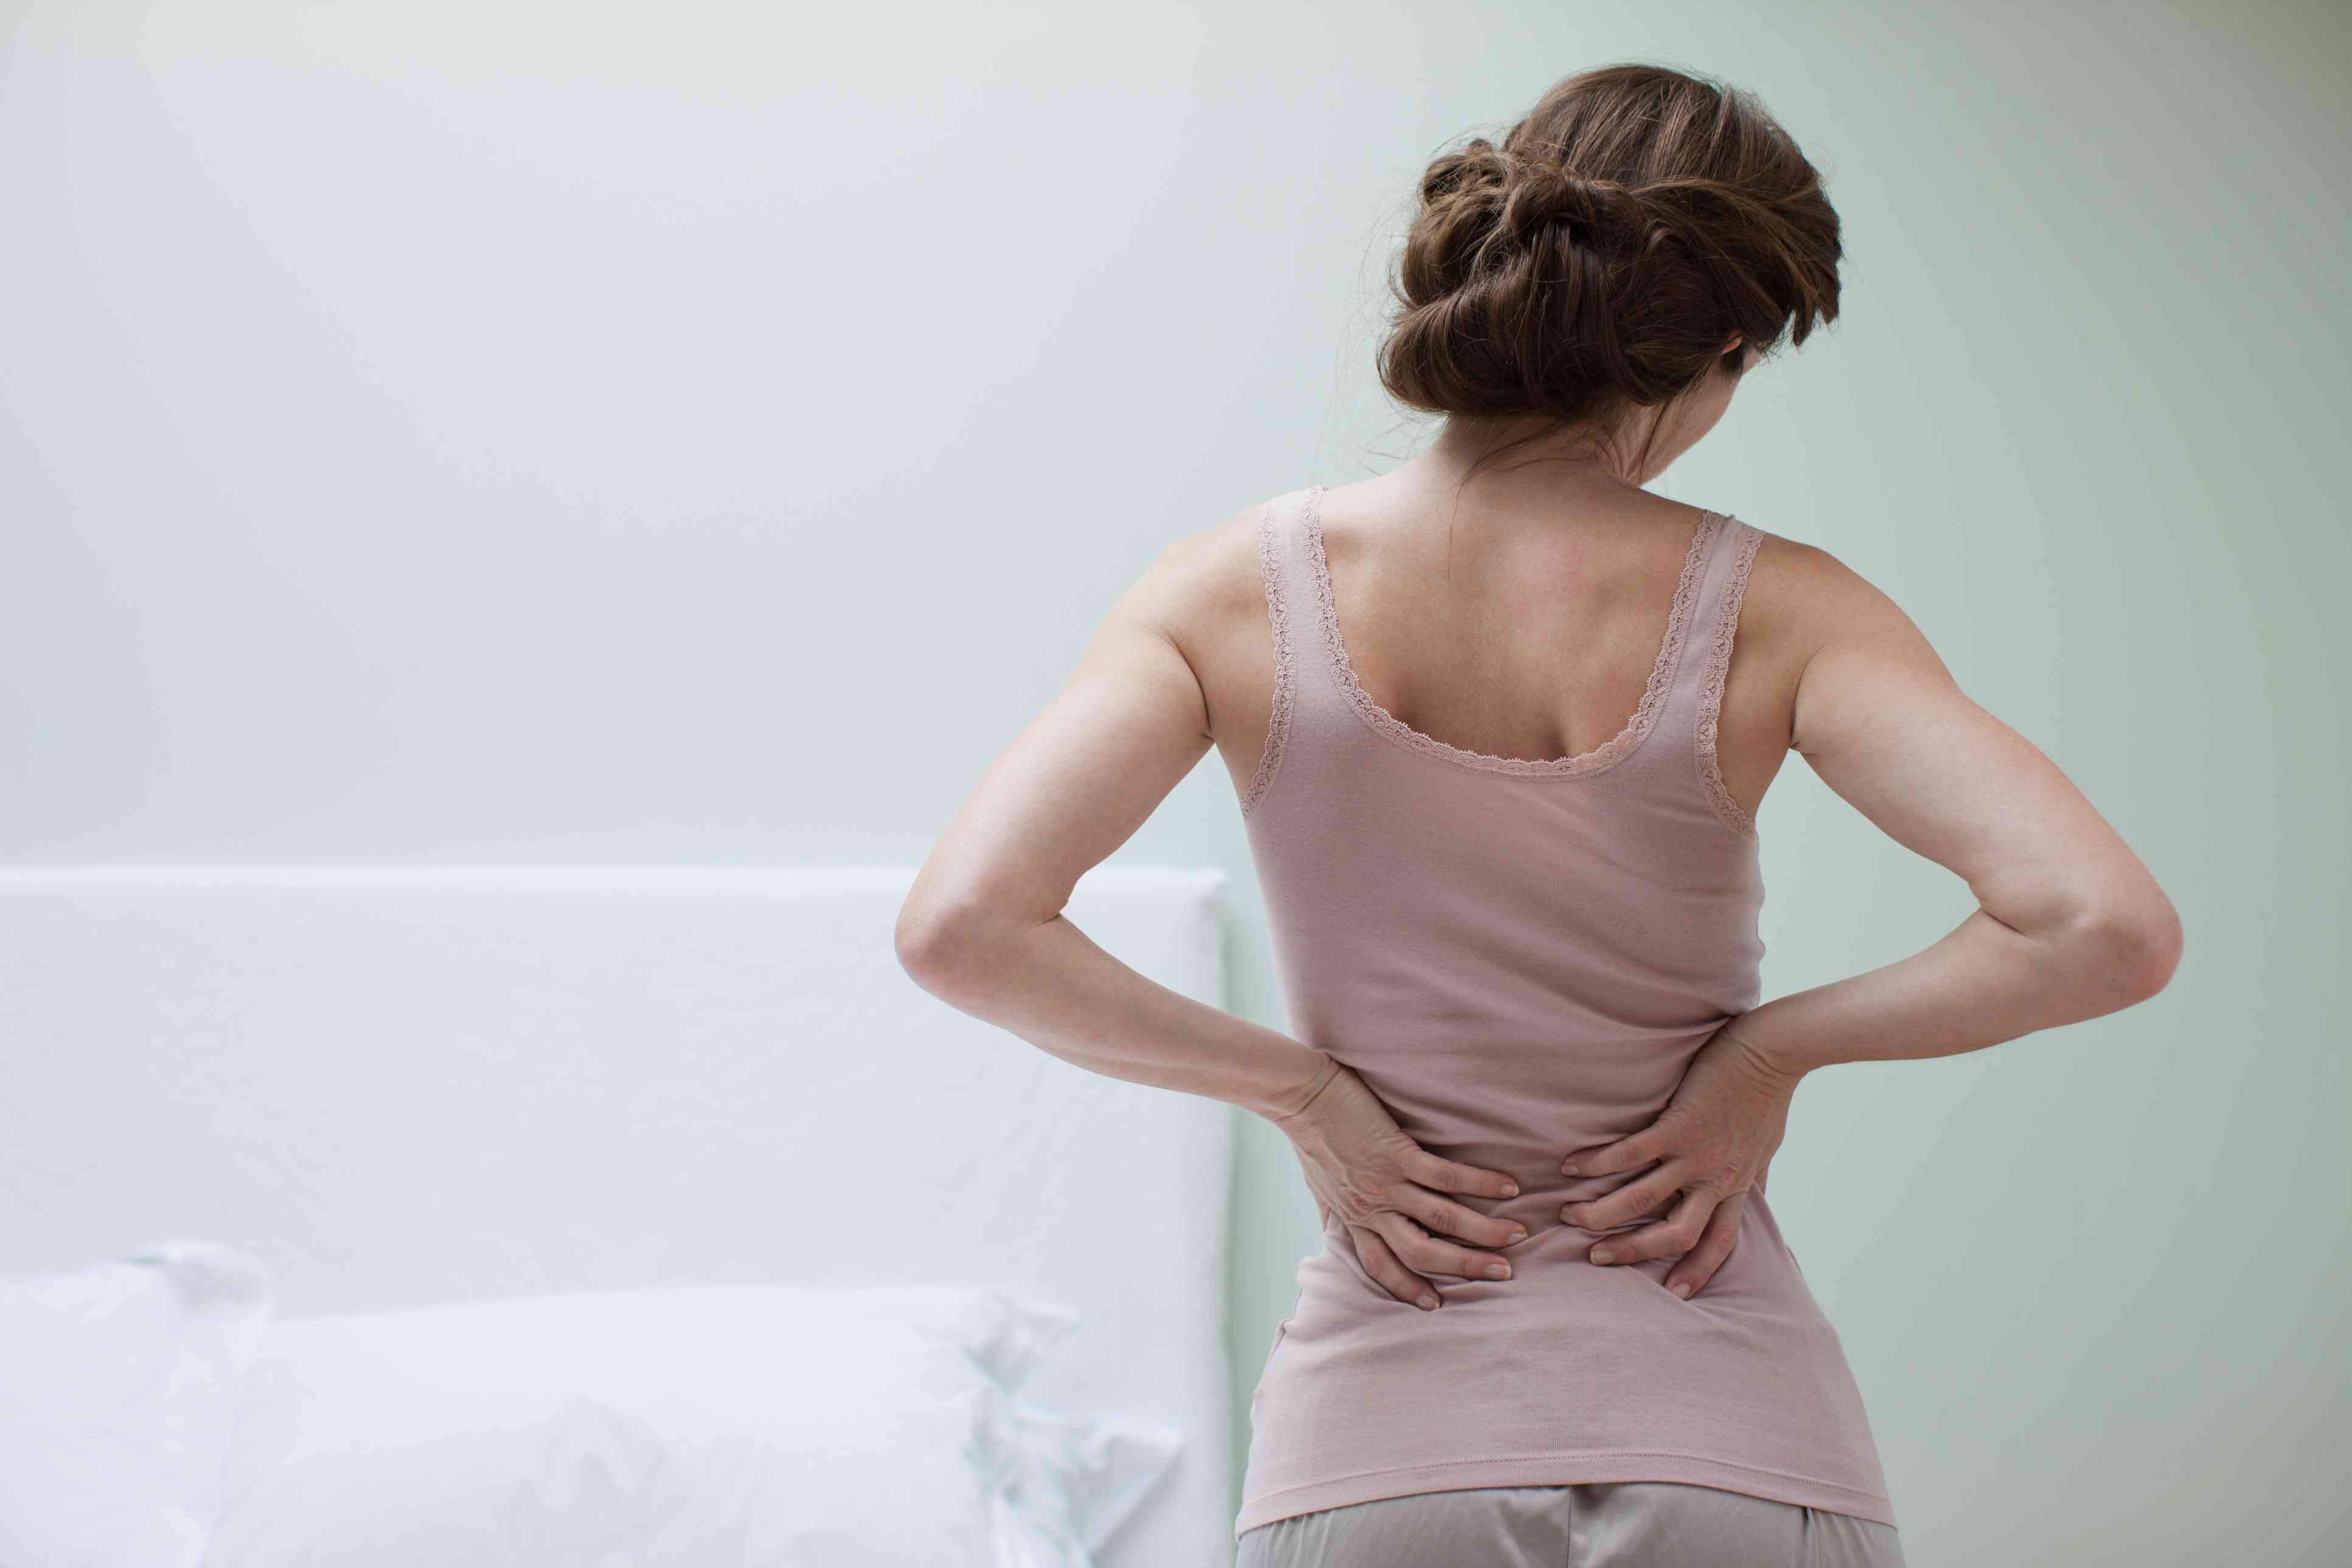 Pelvic Inflammatory Disease Symptoms and Signs